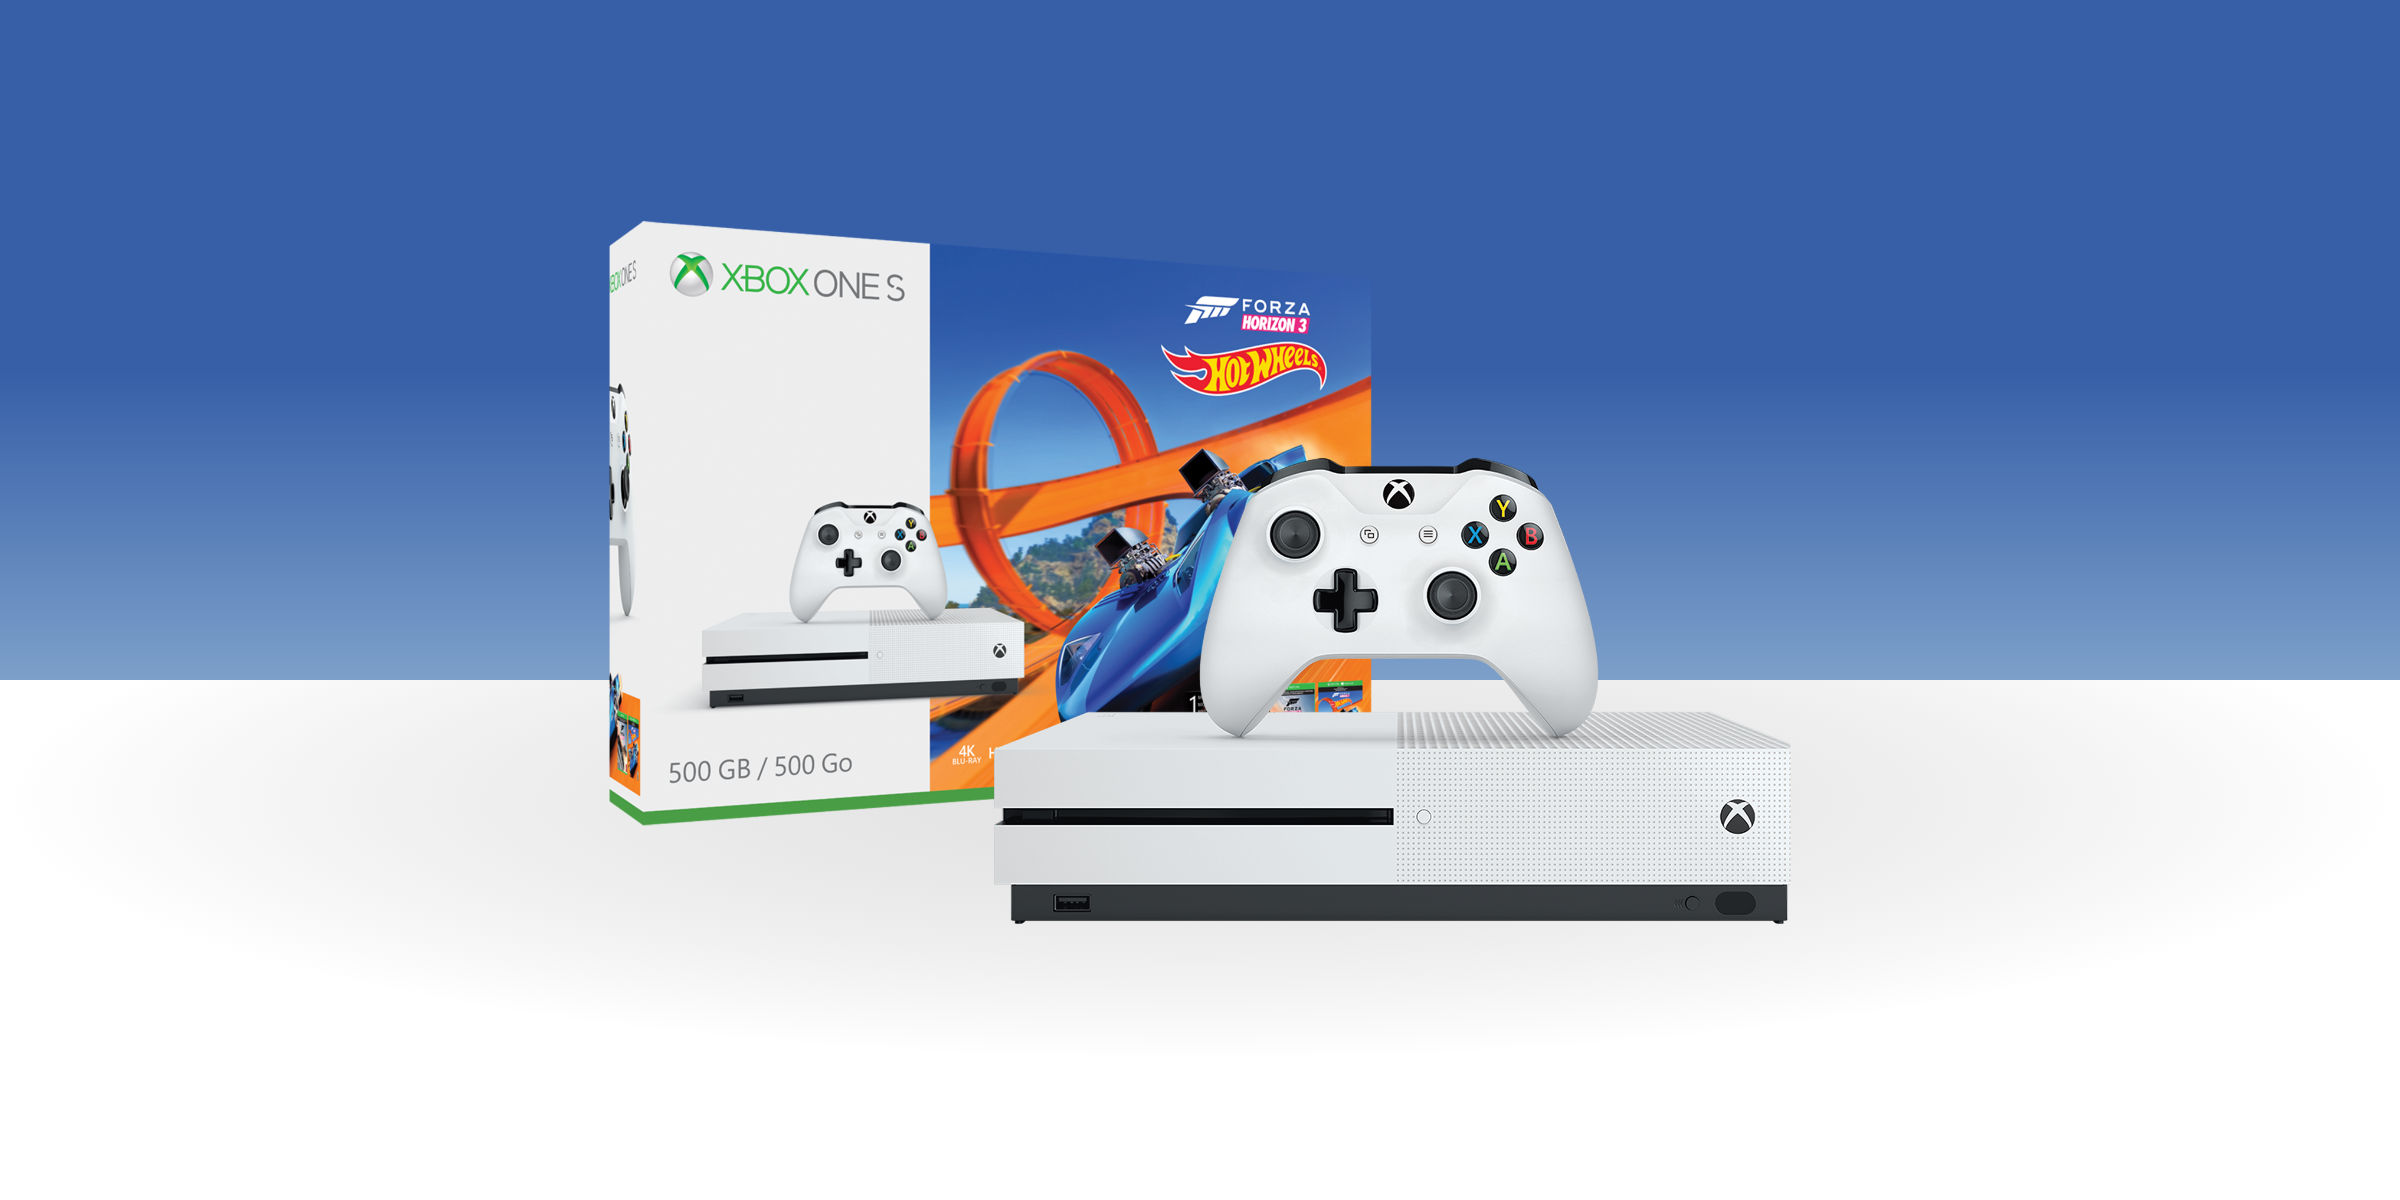 Xbox One S with hot wheels Forza bundle box and background